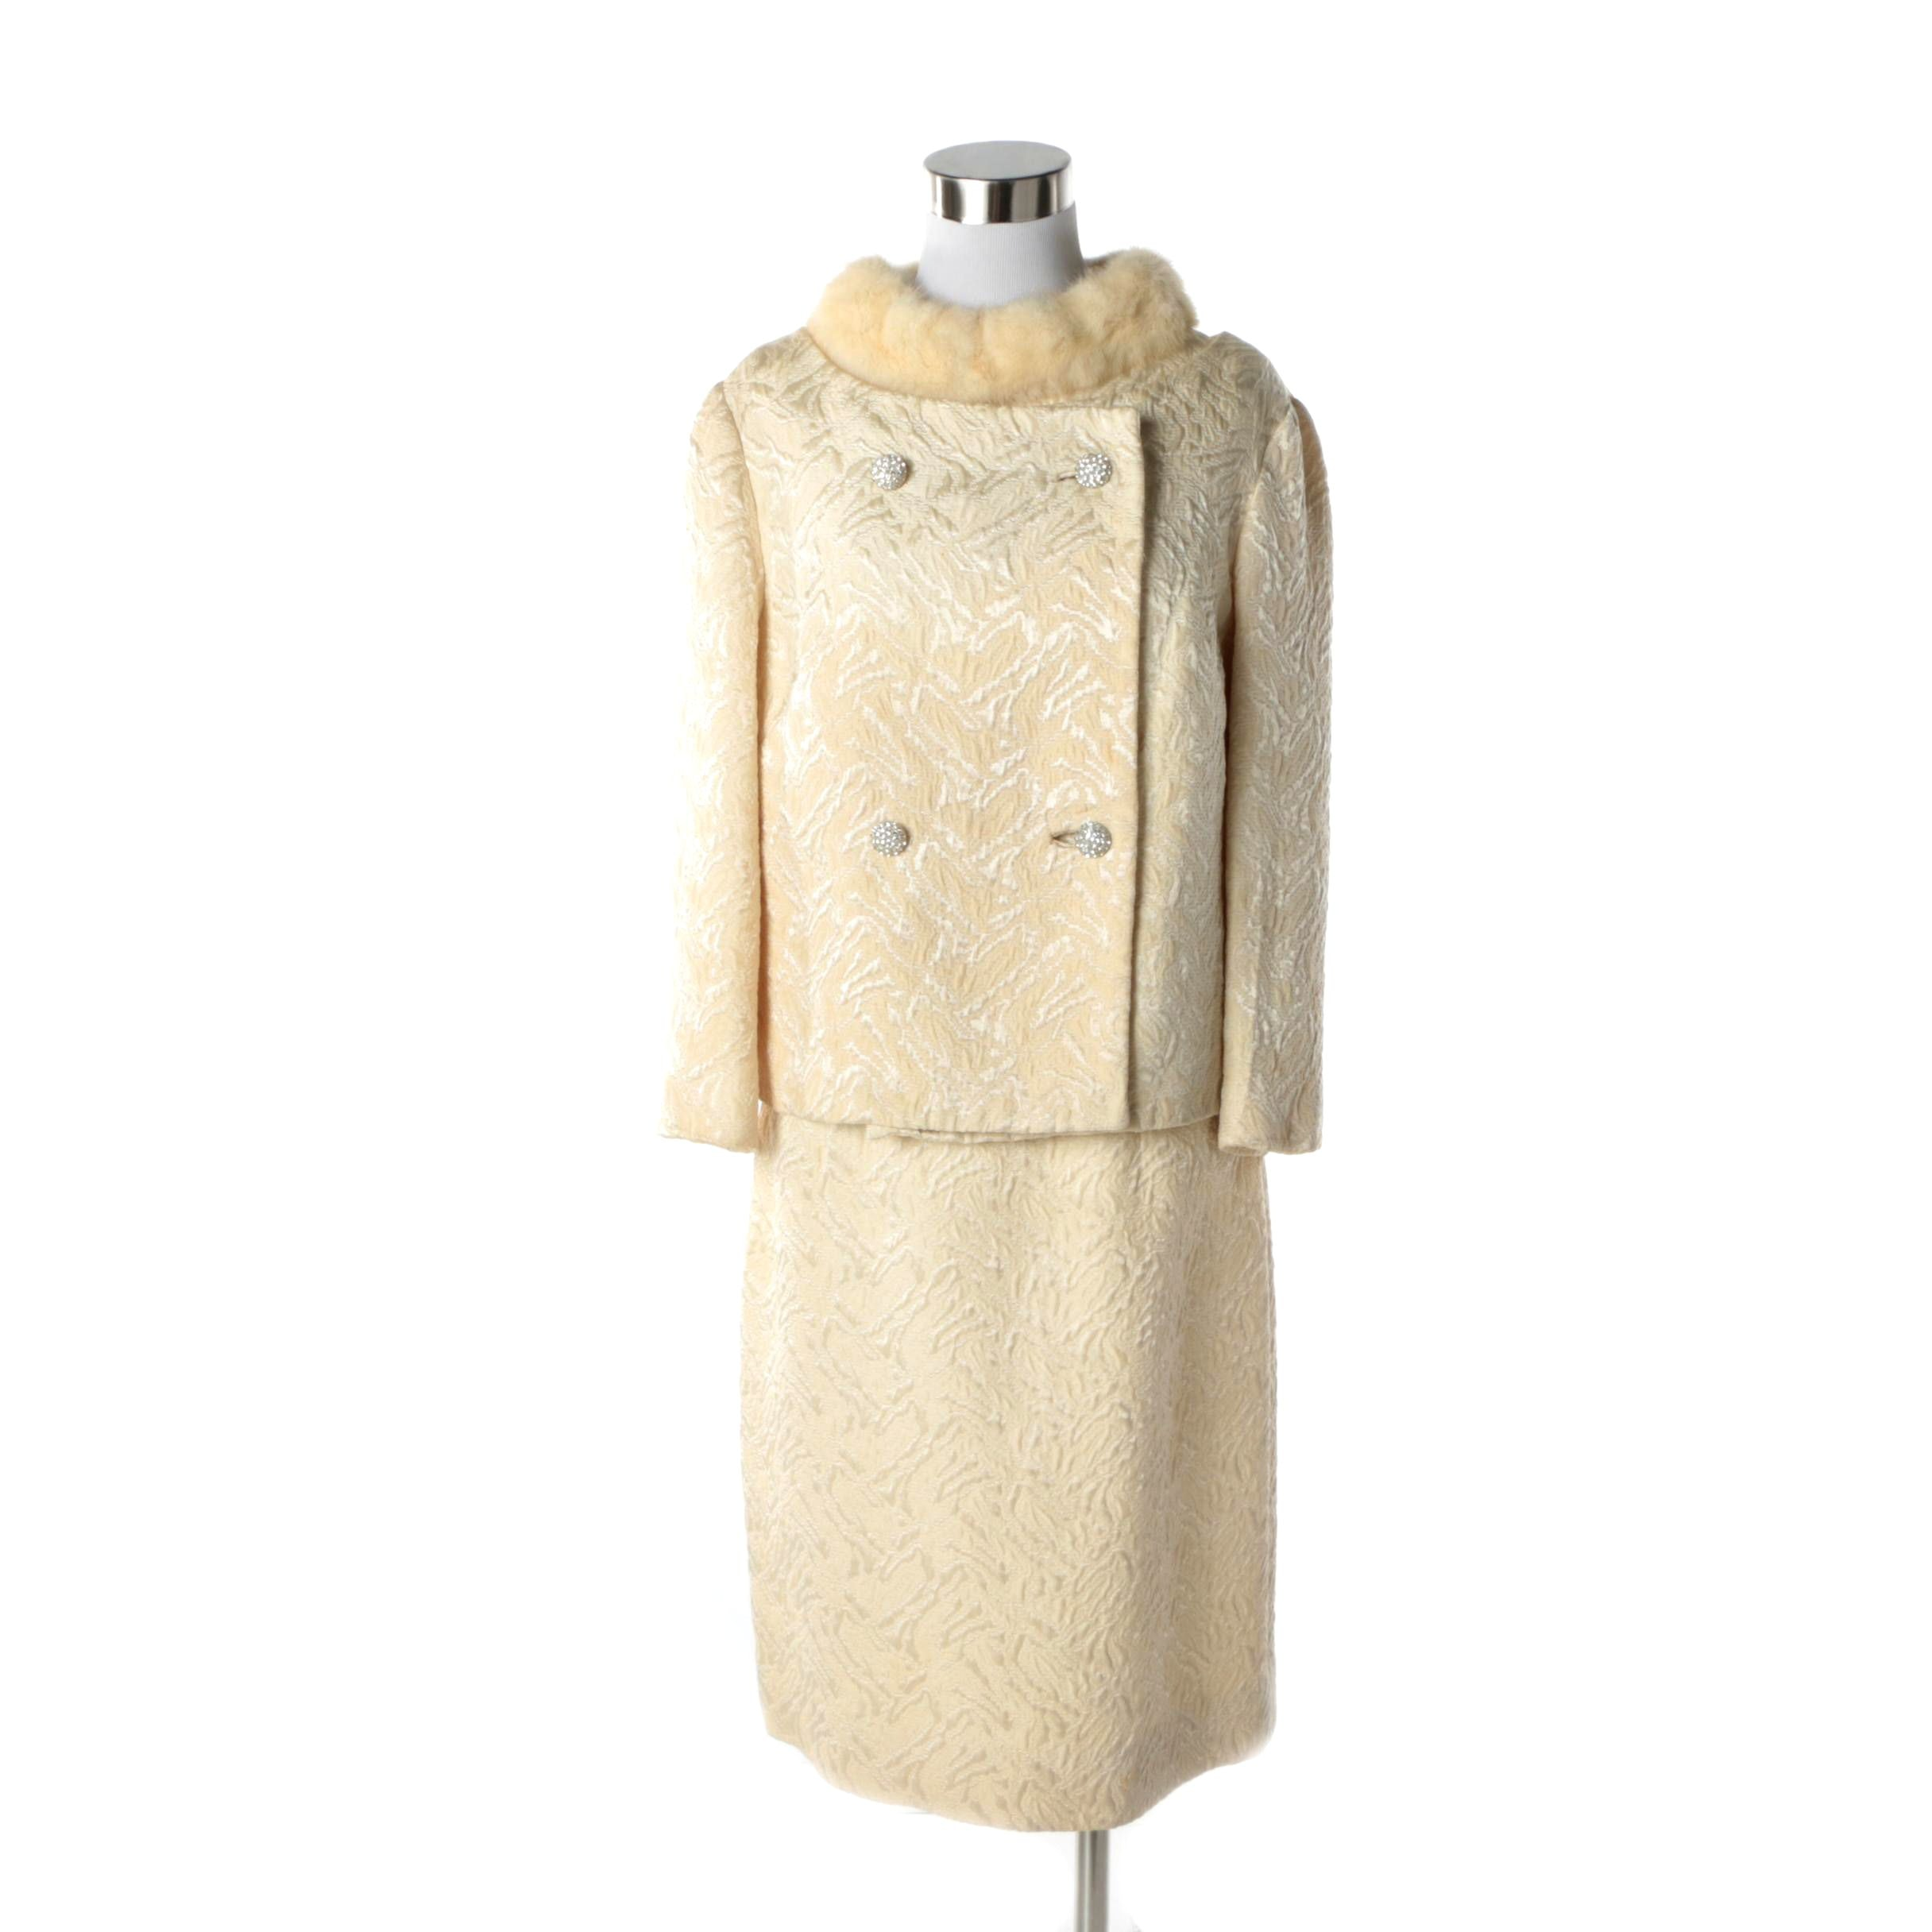 1960s Vintage Open Back Ivory Jacquard and Mink Fur Cocktail Dress and Jacket